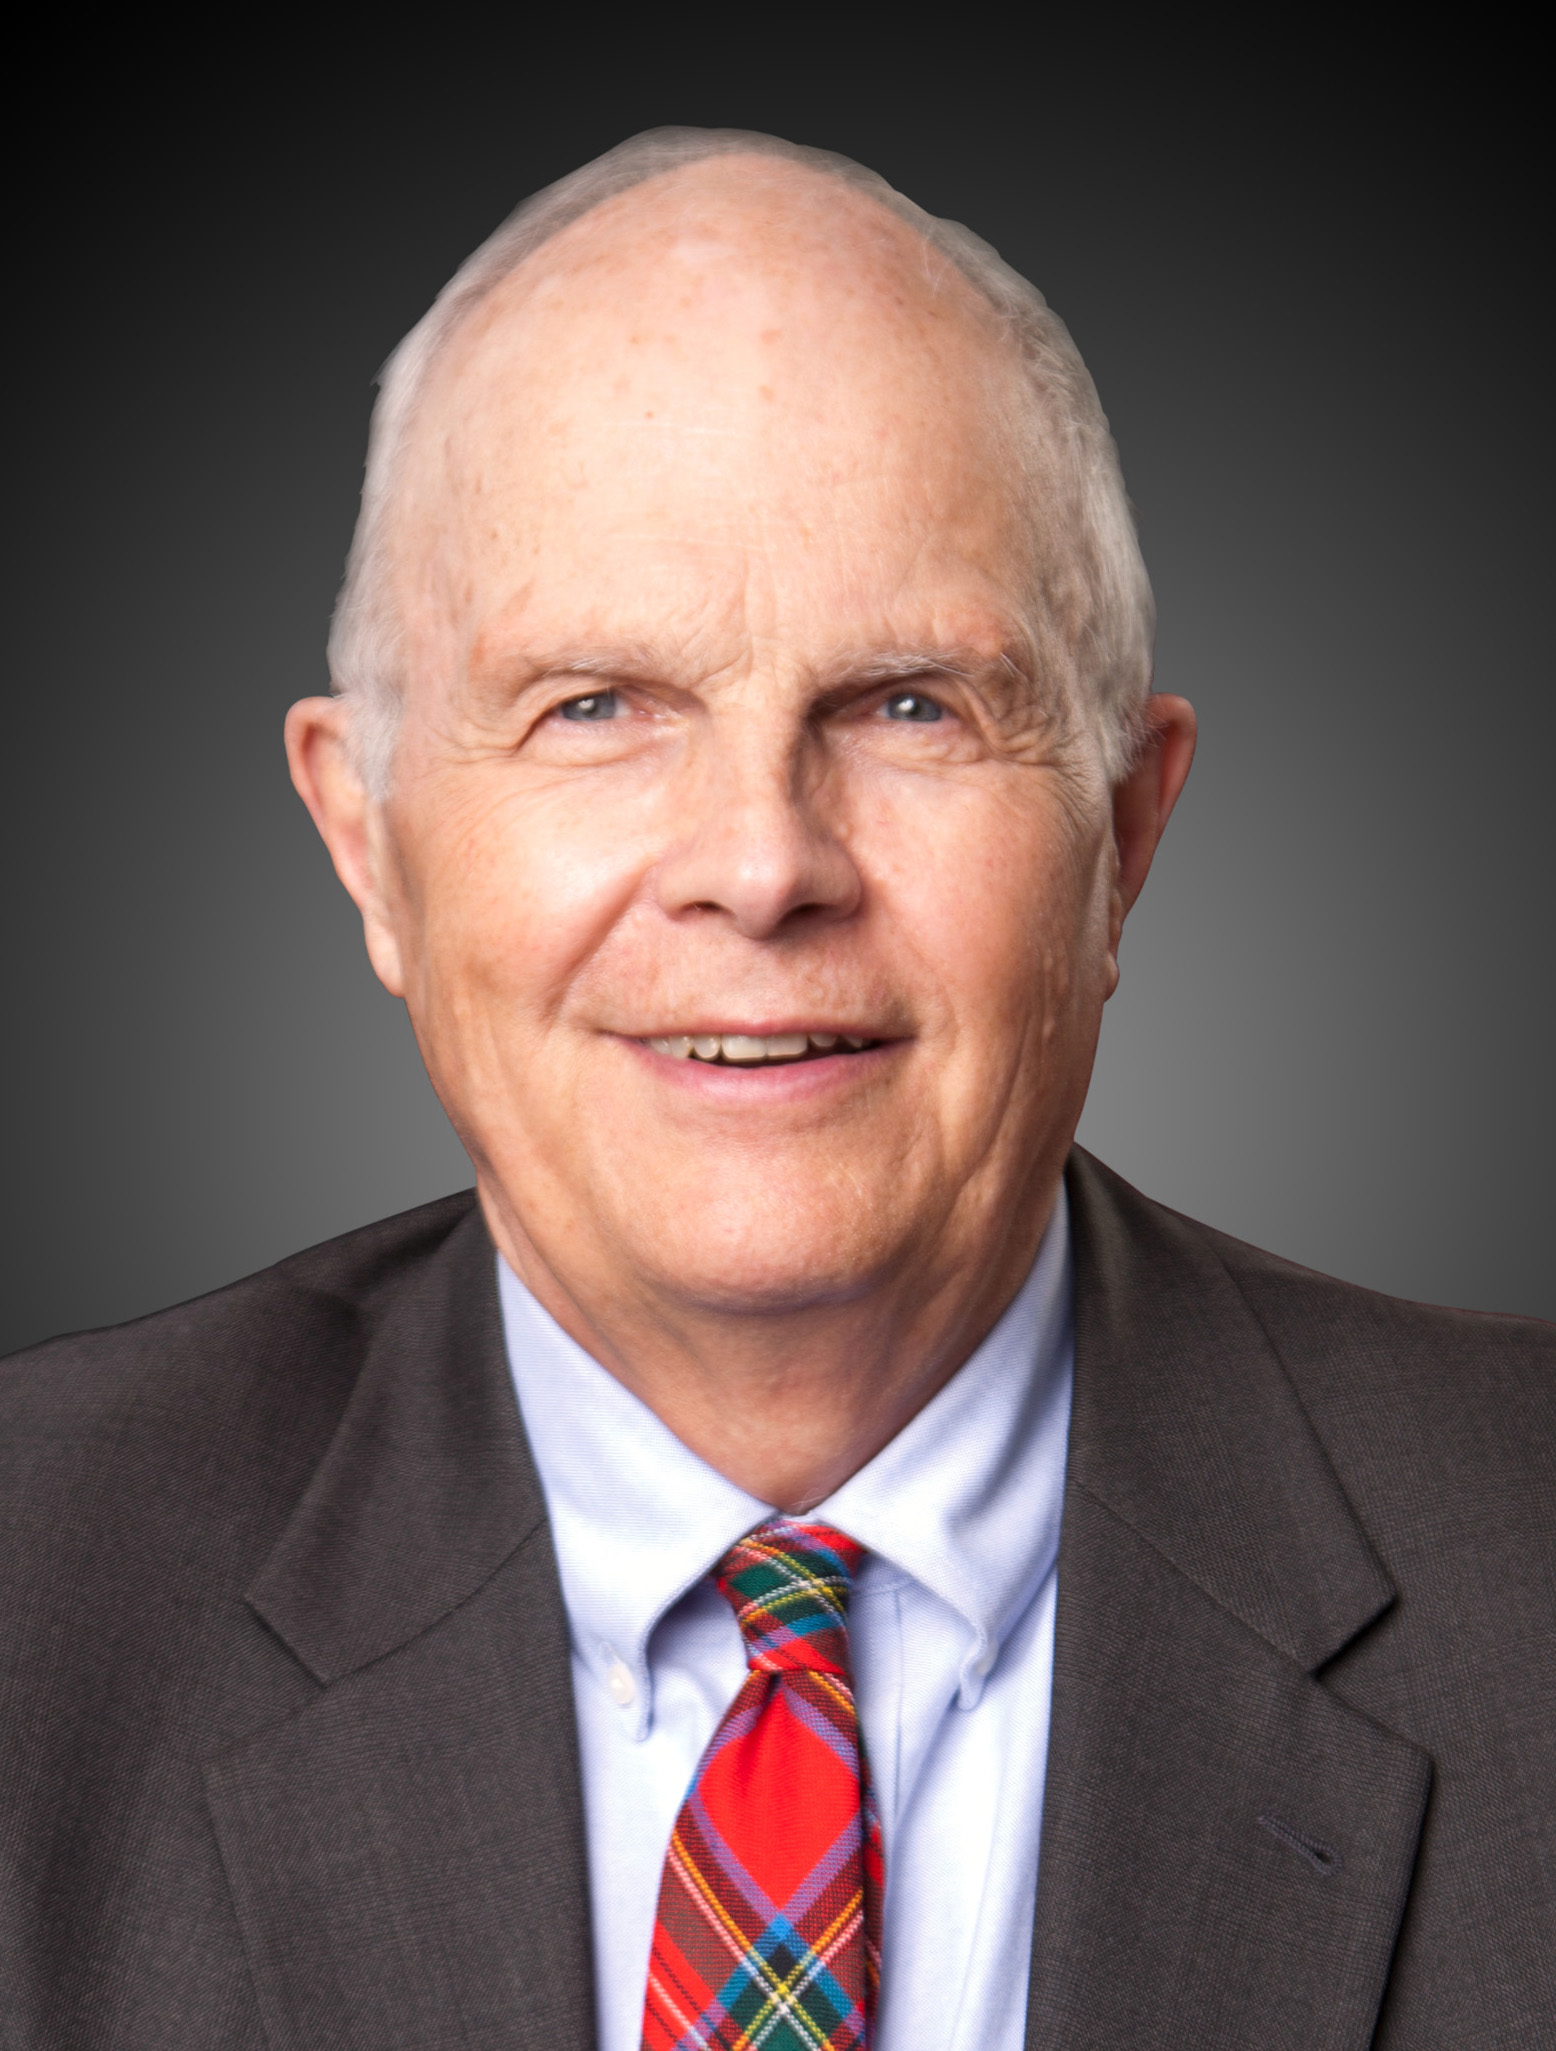 Howard M. Picking III, Chairman